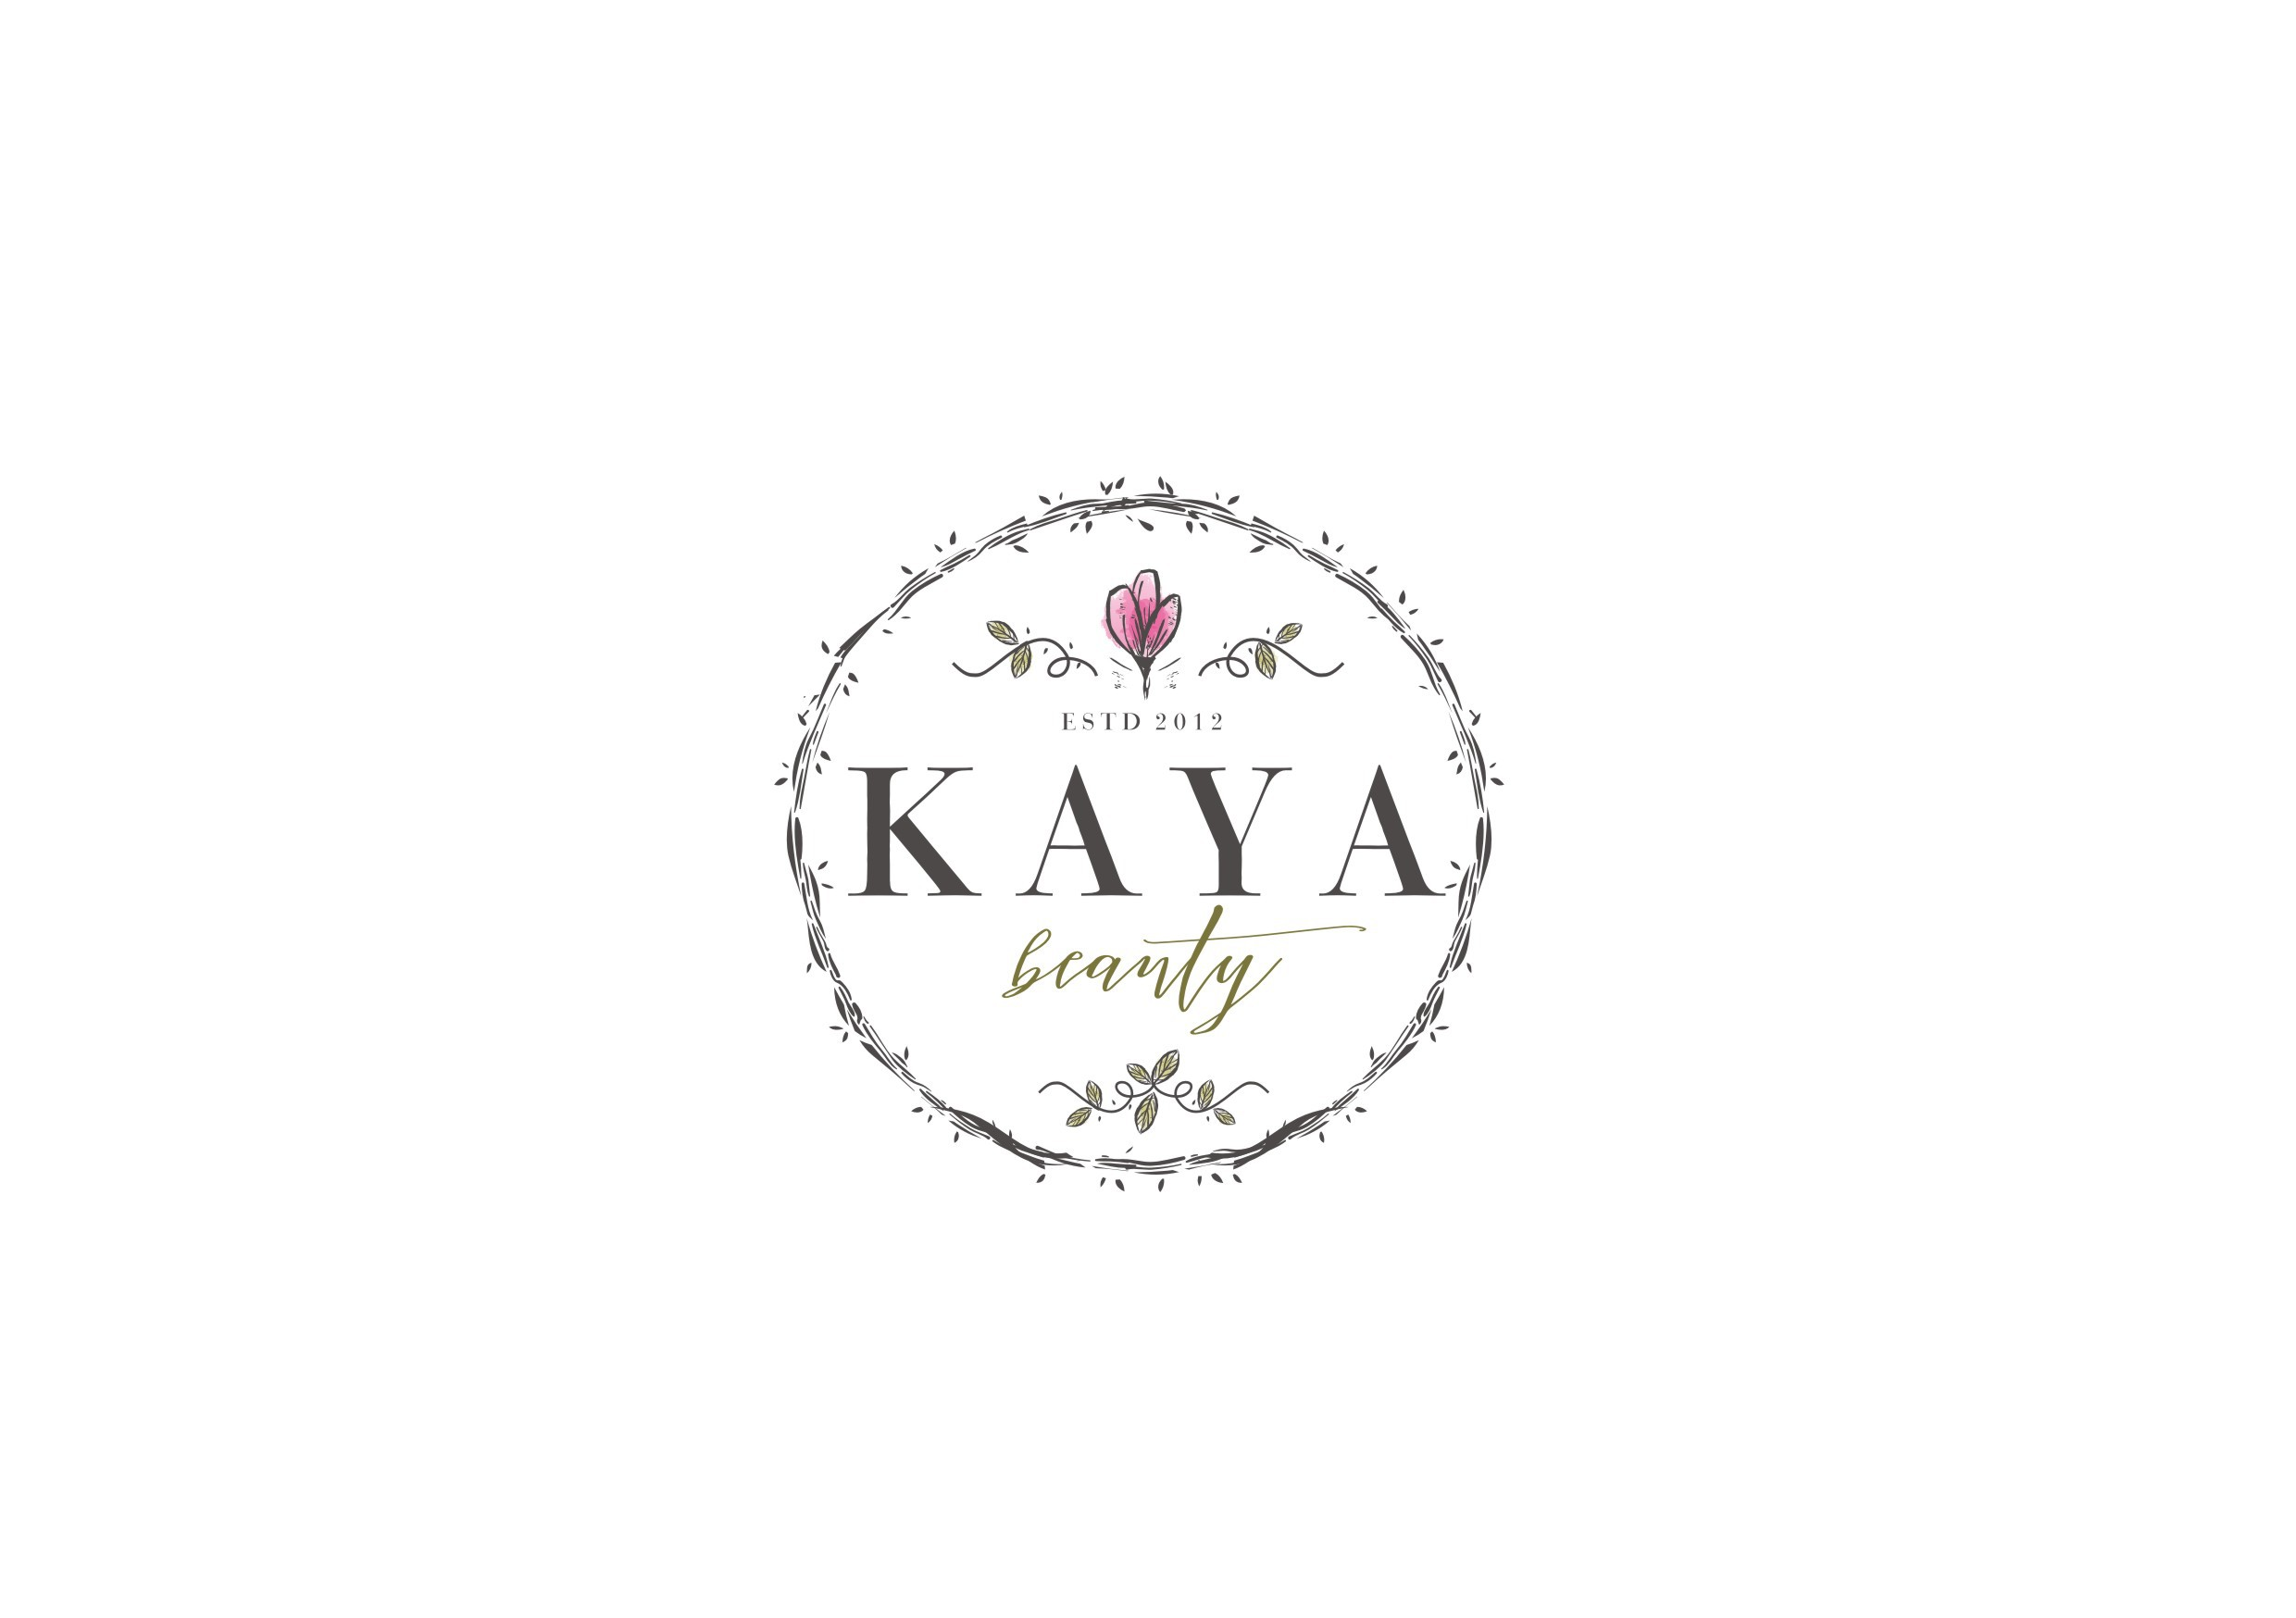 Hi guys.. I would like an elegant and appealing logo to help build up my salon..thanks :)